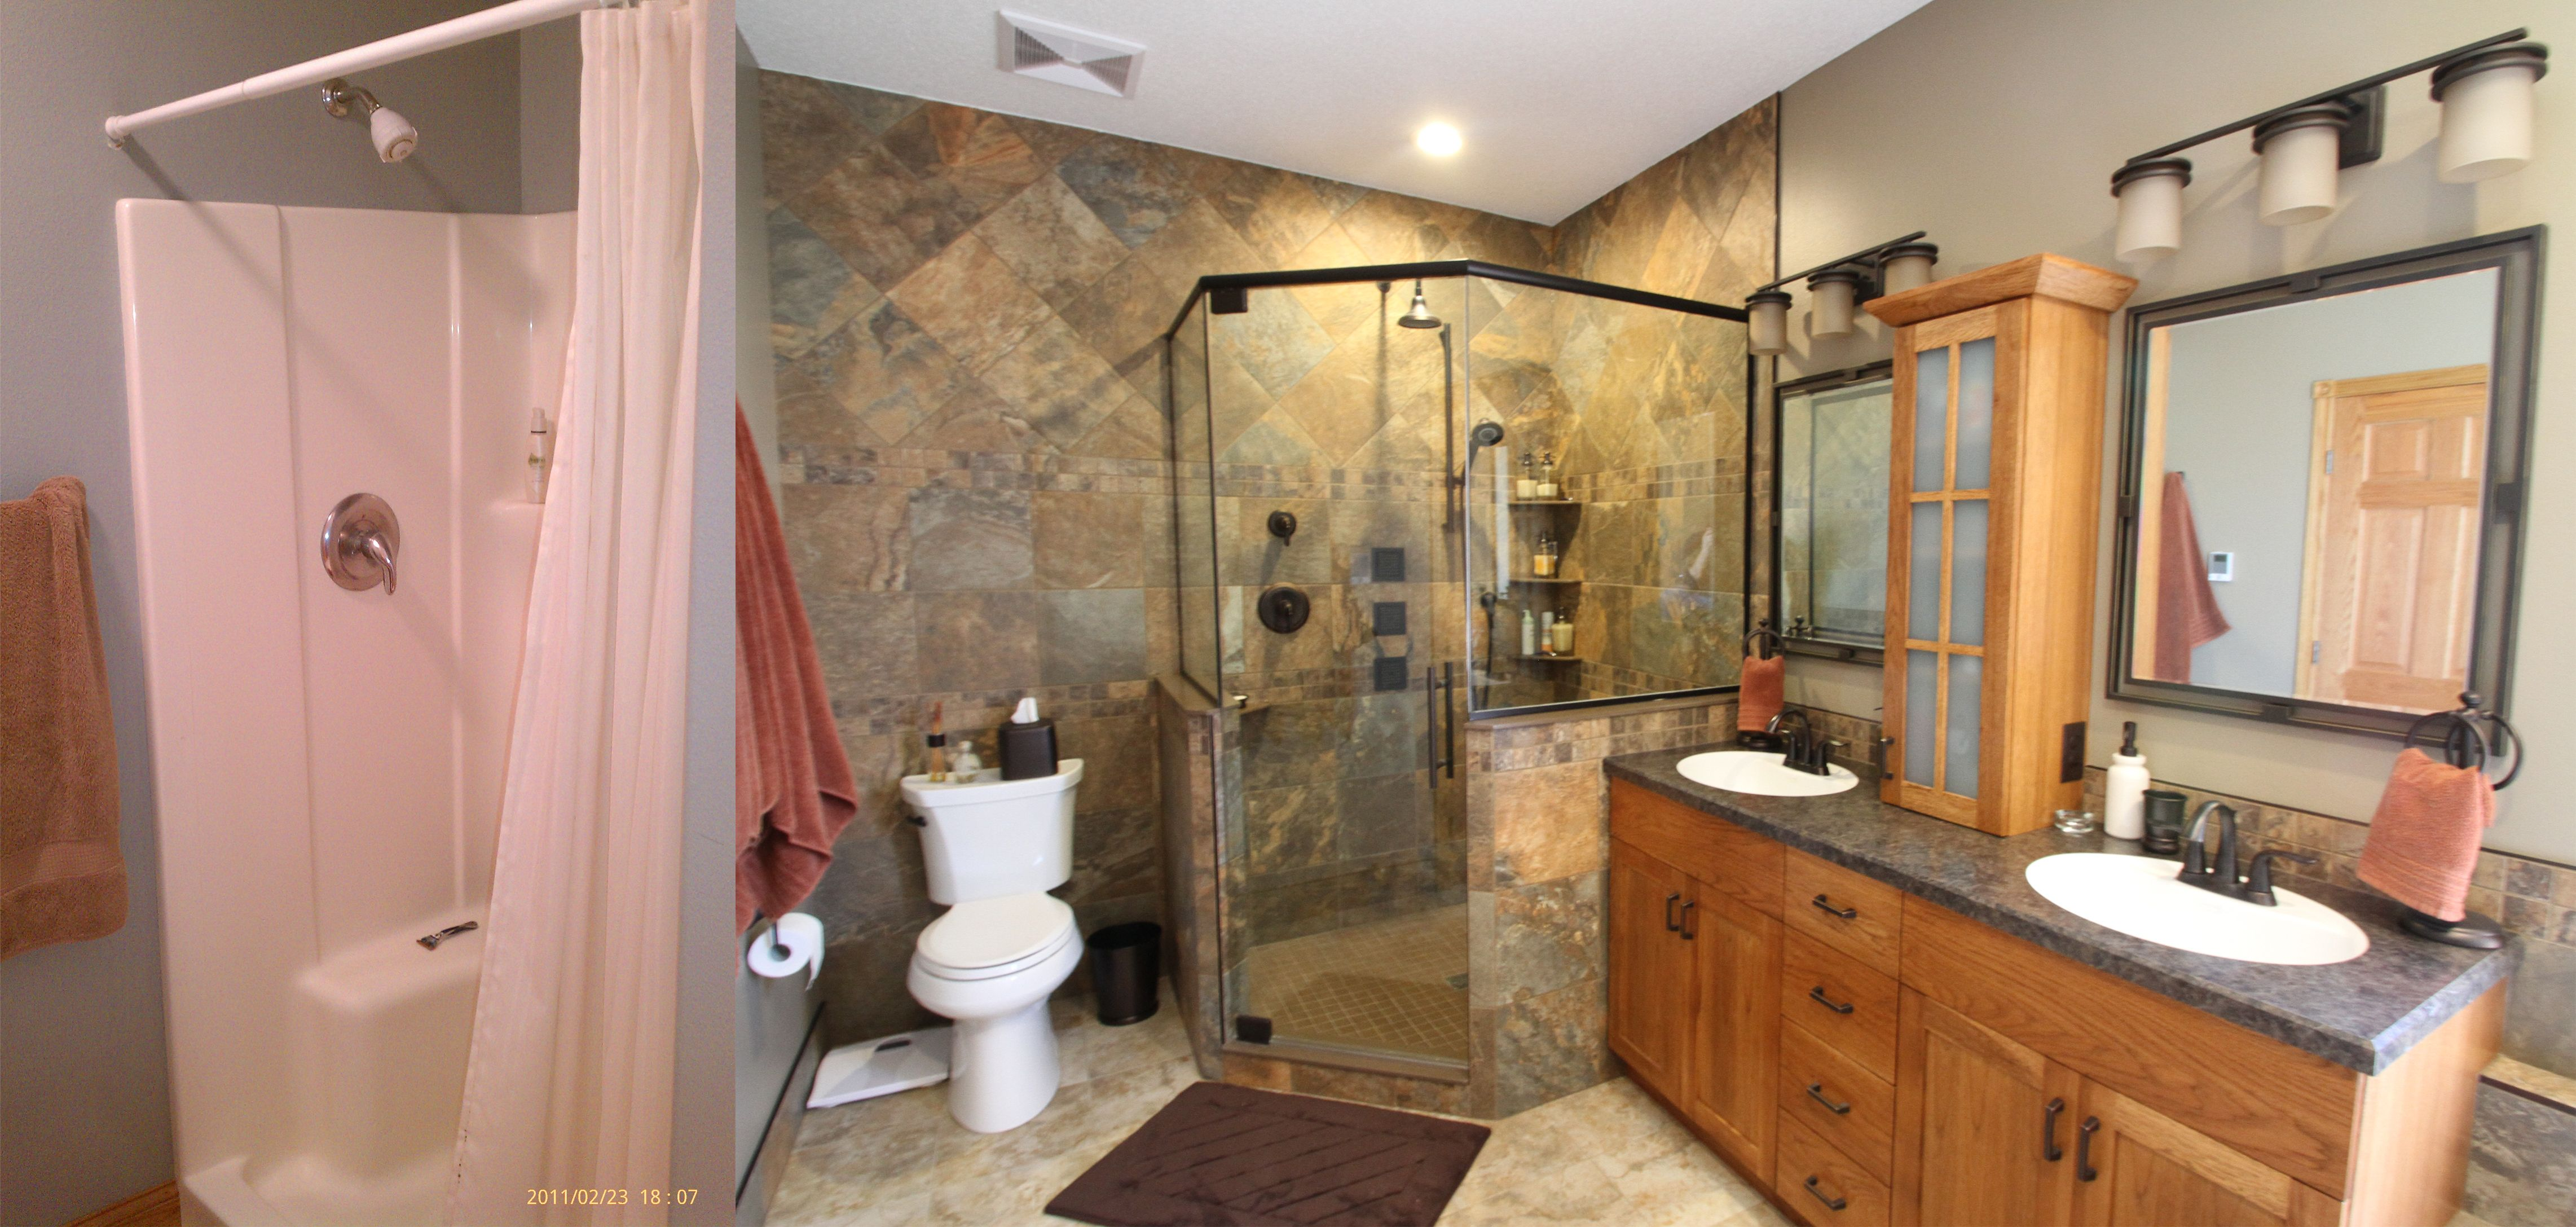 Left: Before ... and Right: AFTER! Amazing bathroom transformation. Anything is possible.  Delta Design & Construction, Inc.  www.deltadesign.biz  701-235-1212